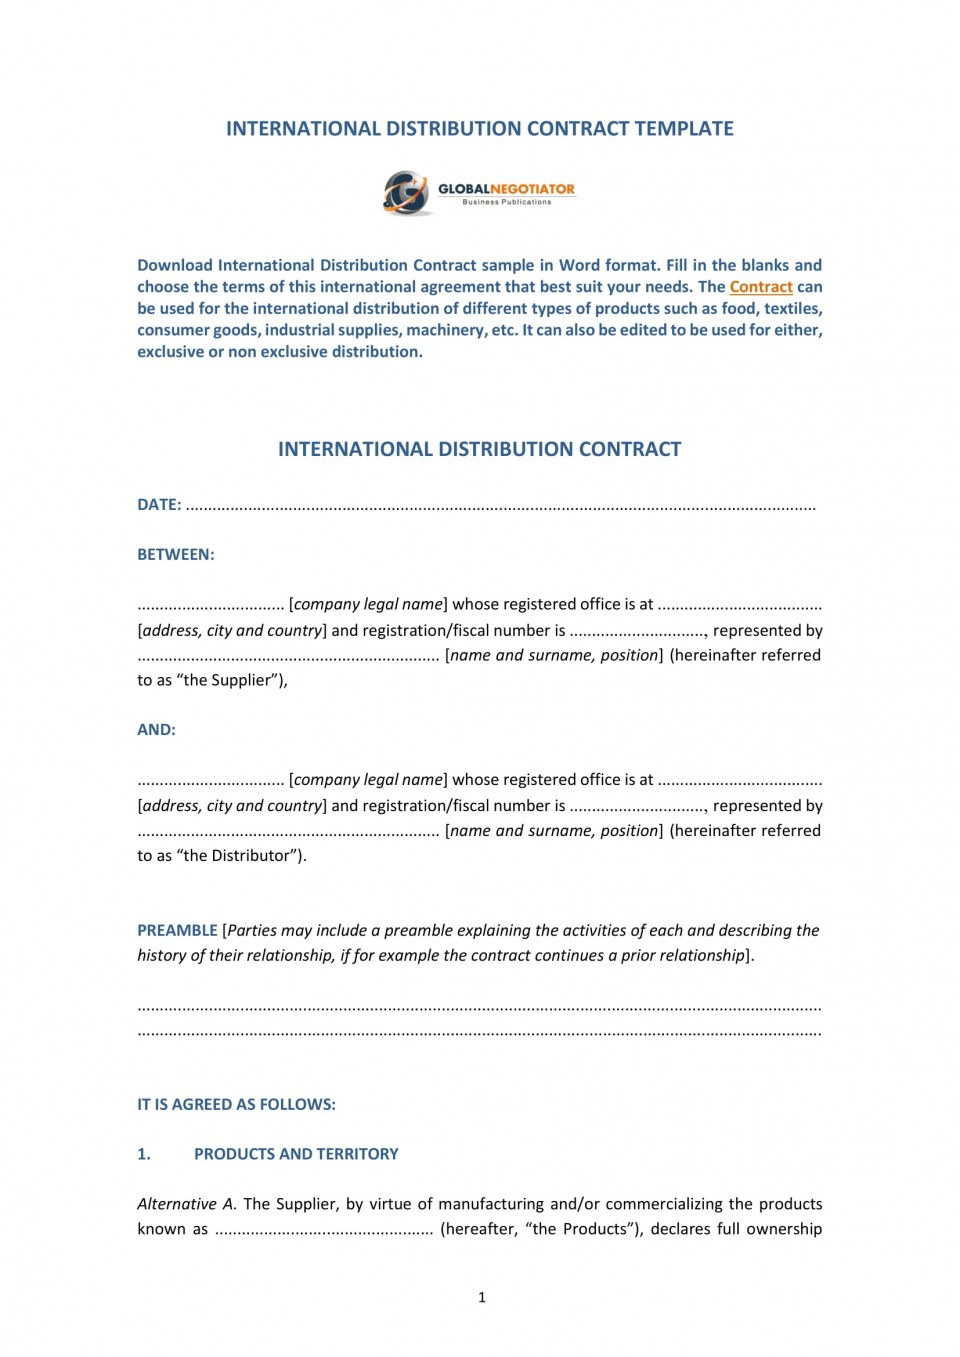 009 Amazing Distribution Agreement Template Word Image  Distributor Exclusive Contract960